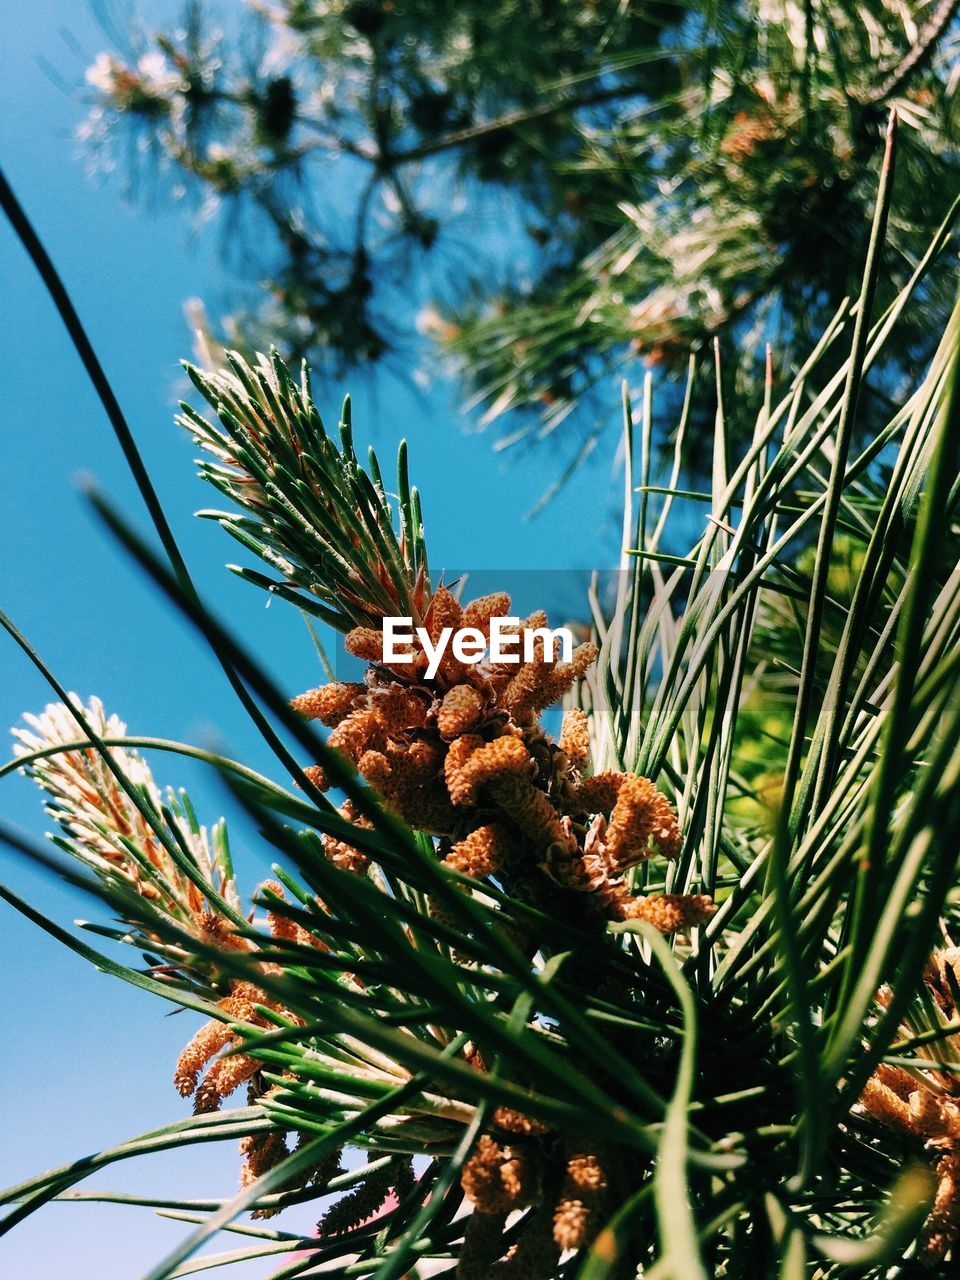 plant, tree, growth, nature, pine cone, day, low angle view, no people, sky, beauty in nature, coniferous tree, close-up, green color, pine tree, selective focus, tranquility, branch, flower, focus on foreground, sunlight, outdoors, needle - plant part